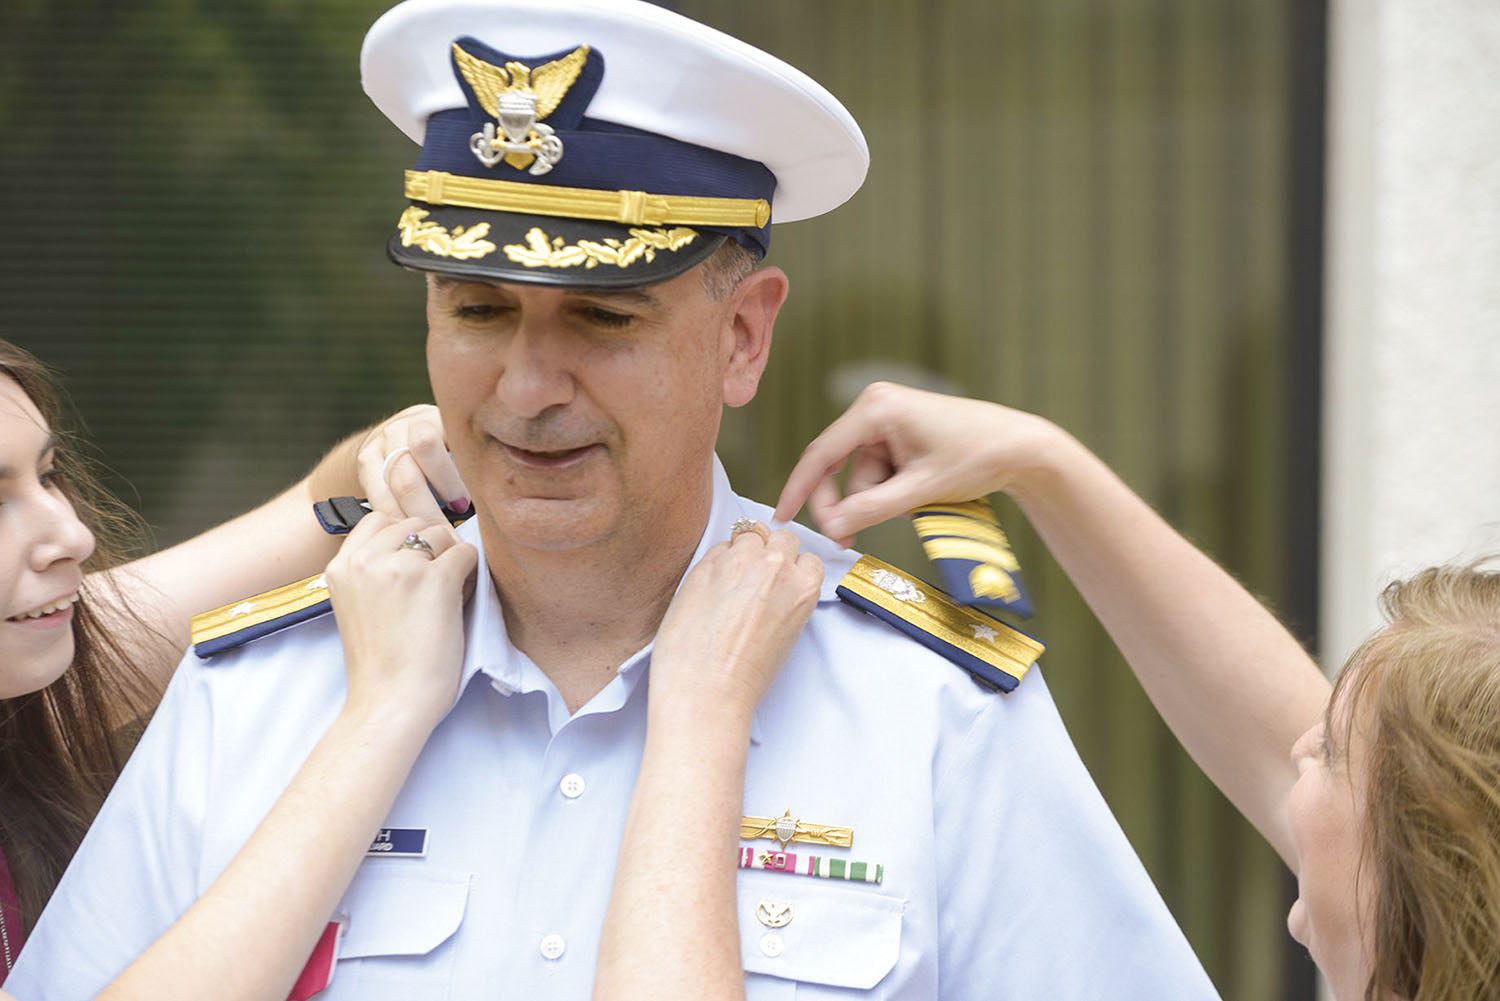 Rear Adm. Shannon Gilreath receives new shoulder boards from his daughter and wife during the May 22 frocking ceremony. (U.S. Coast Guard photo)